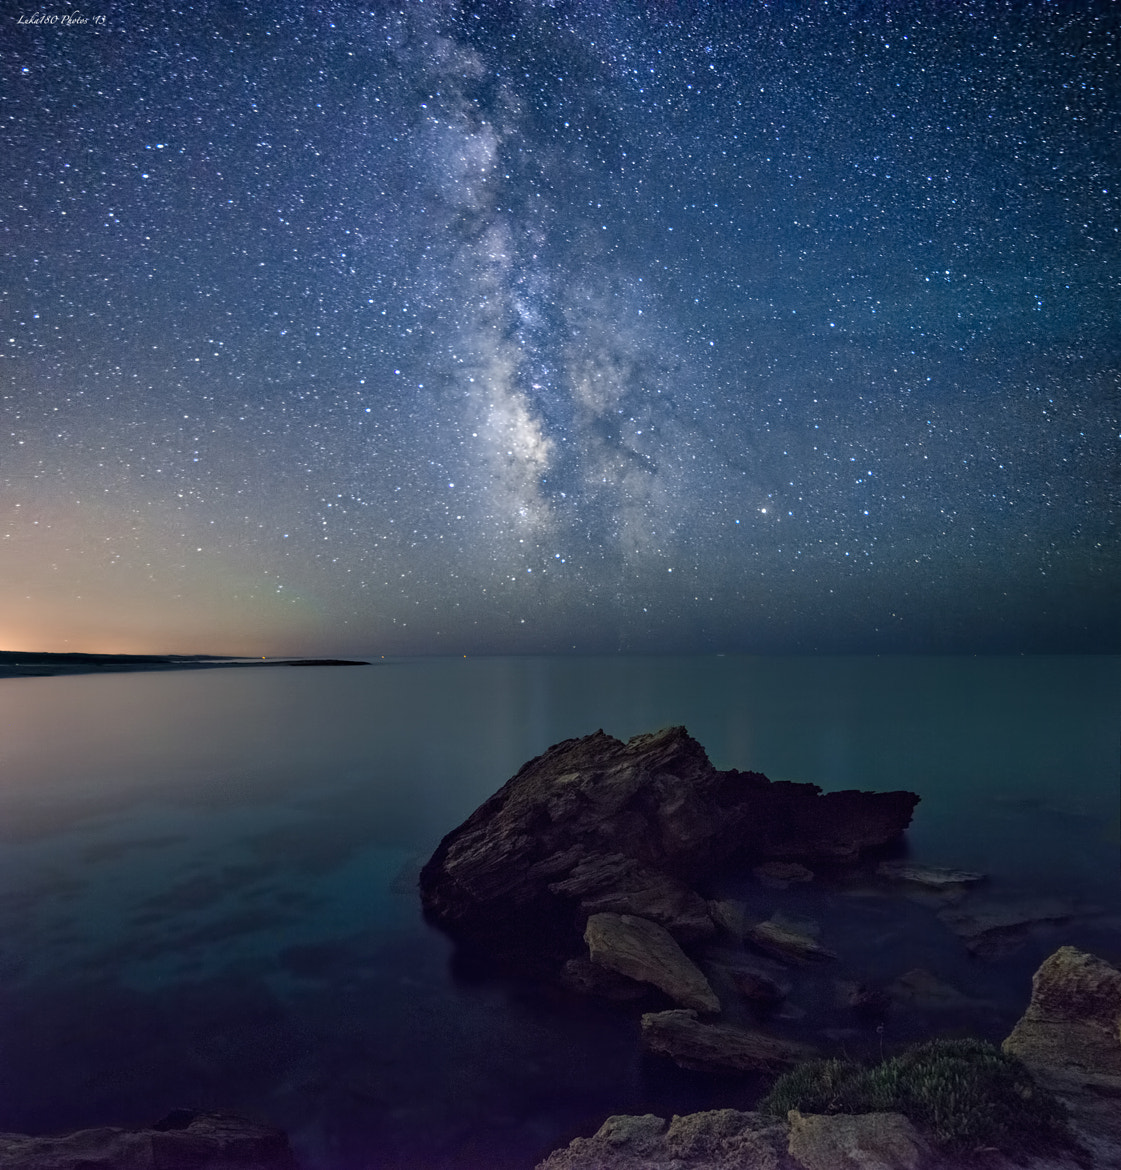 Photograph The Milky Way @Is Arutas by Luka180 S. on 500px